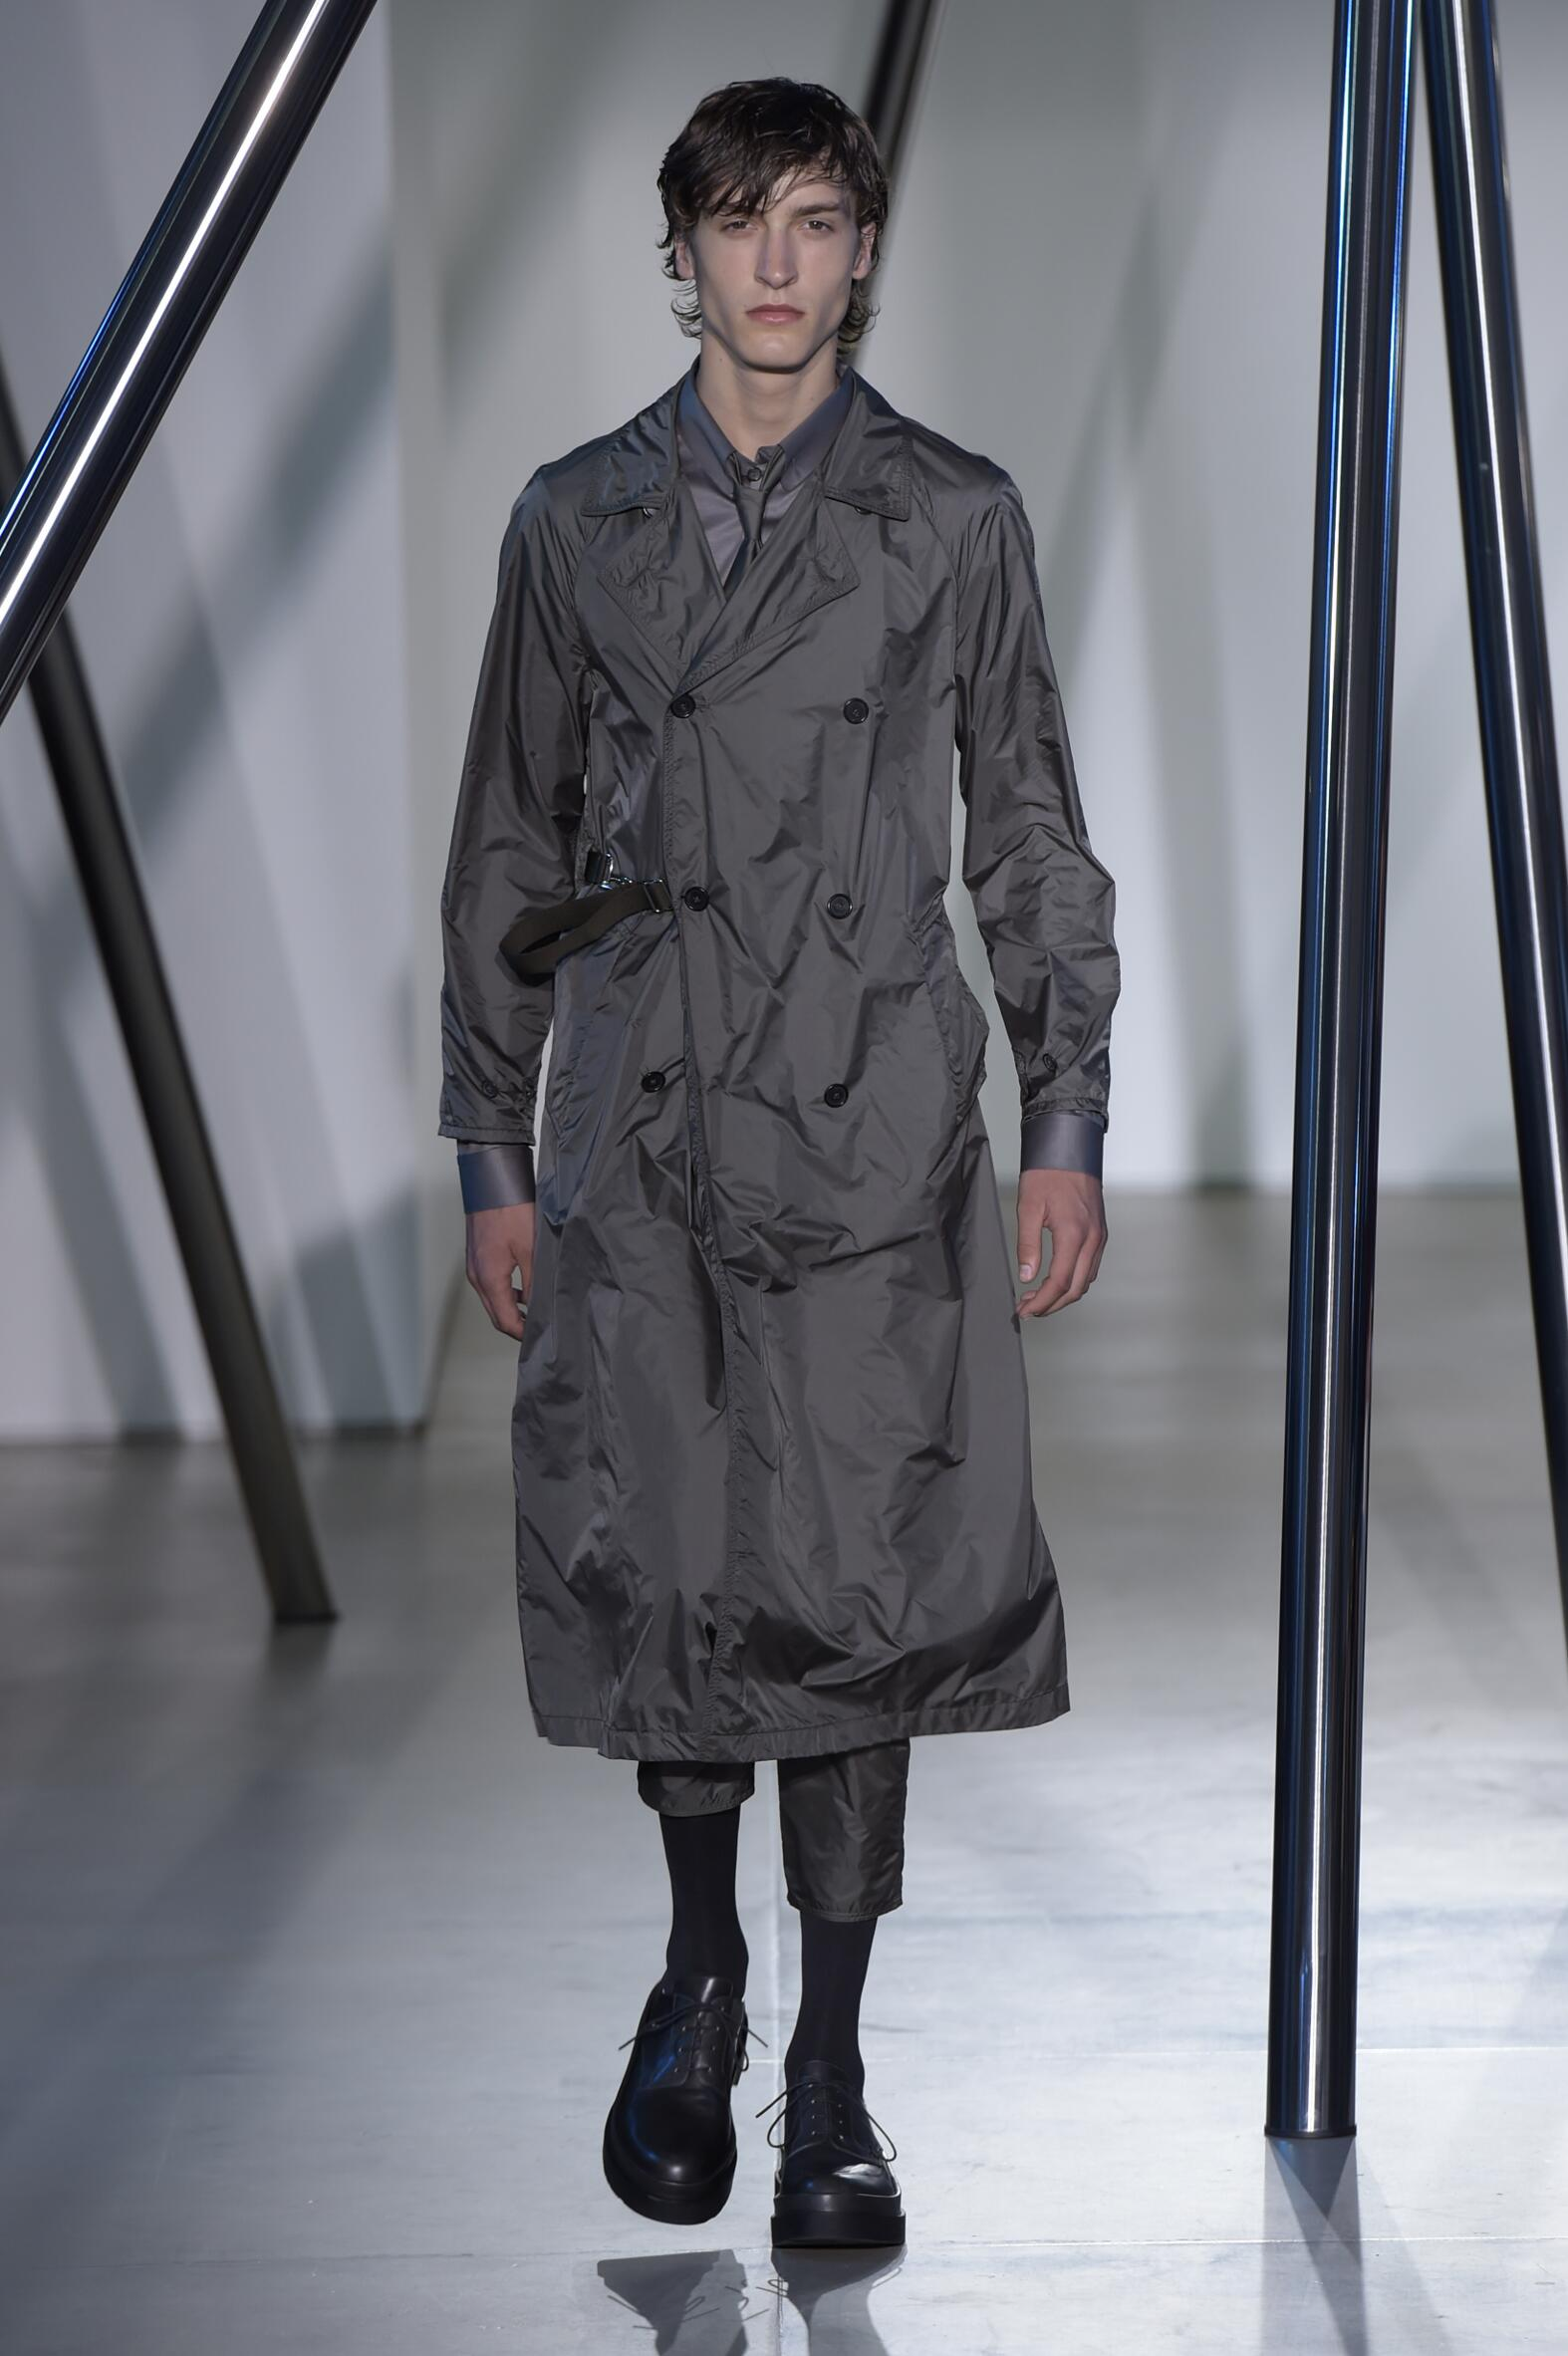 Spring Fashion Man Jil Sander Collection